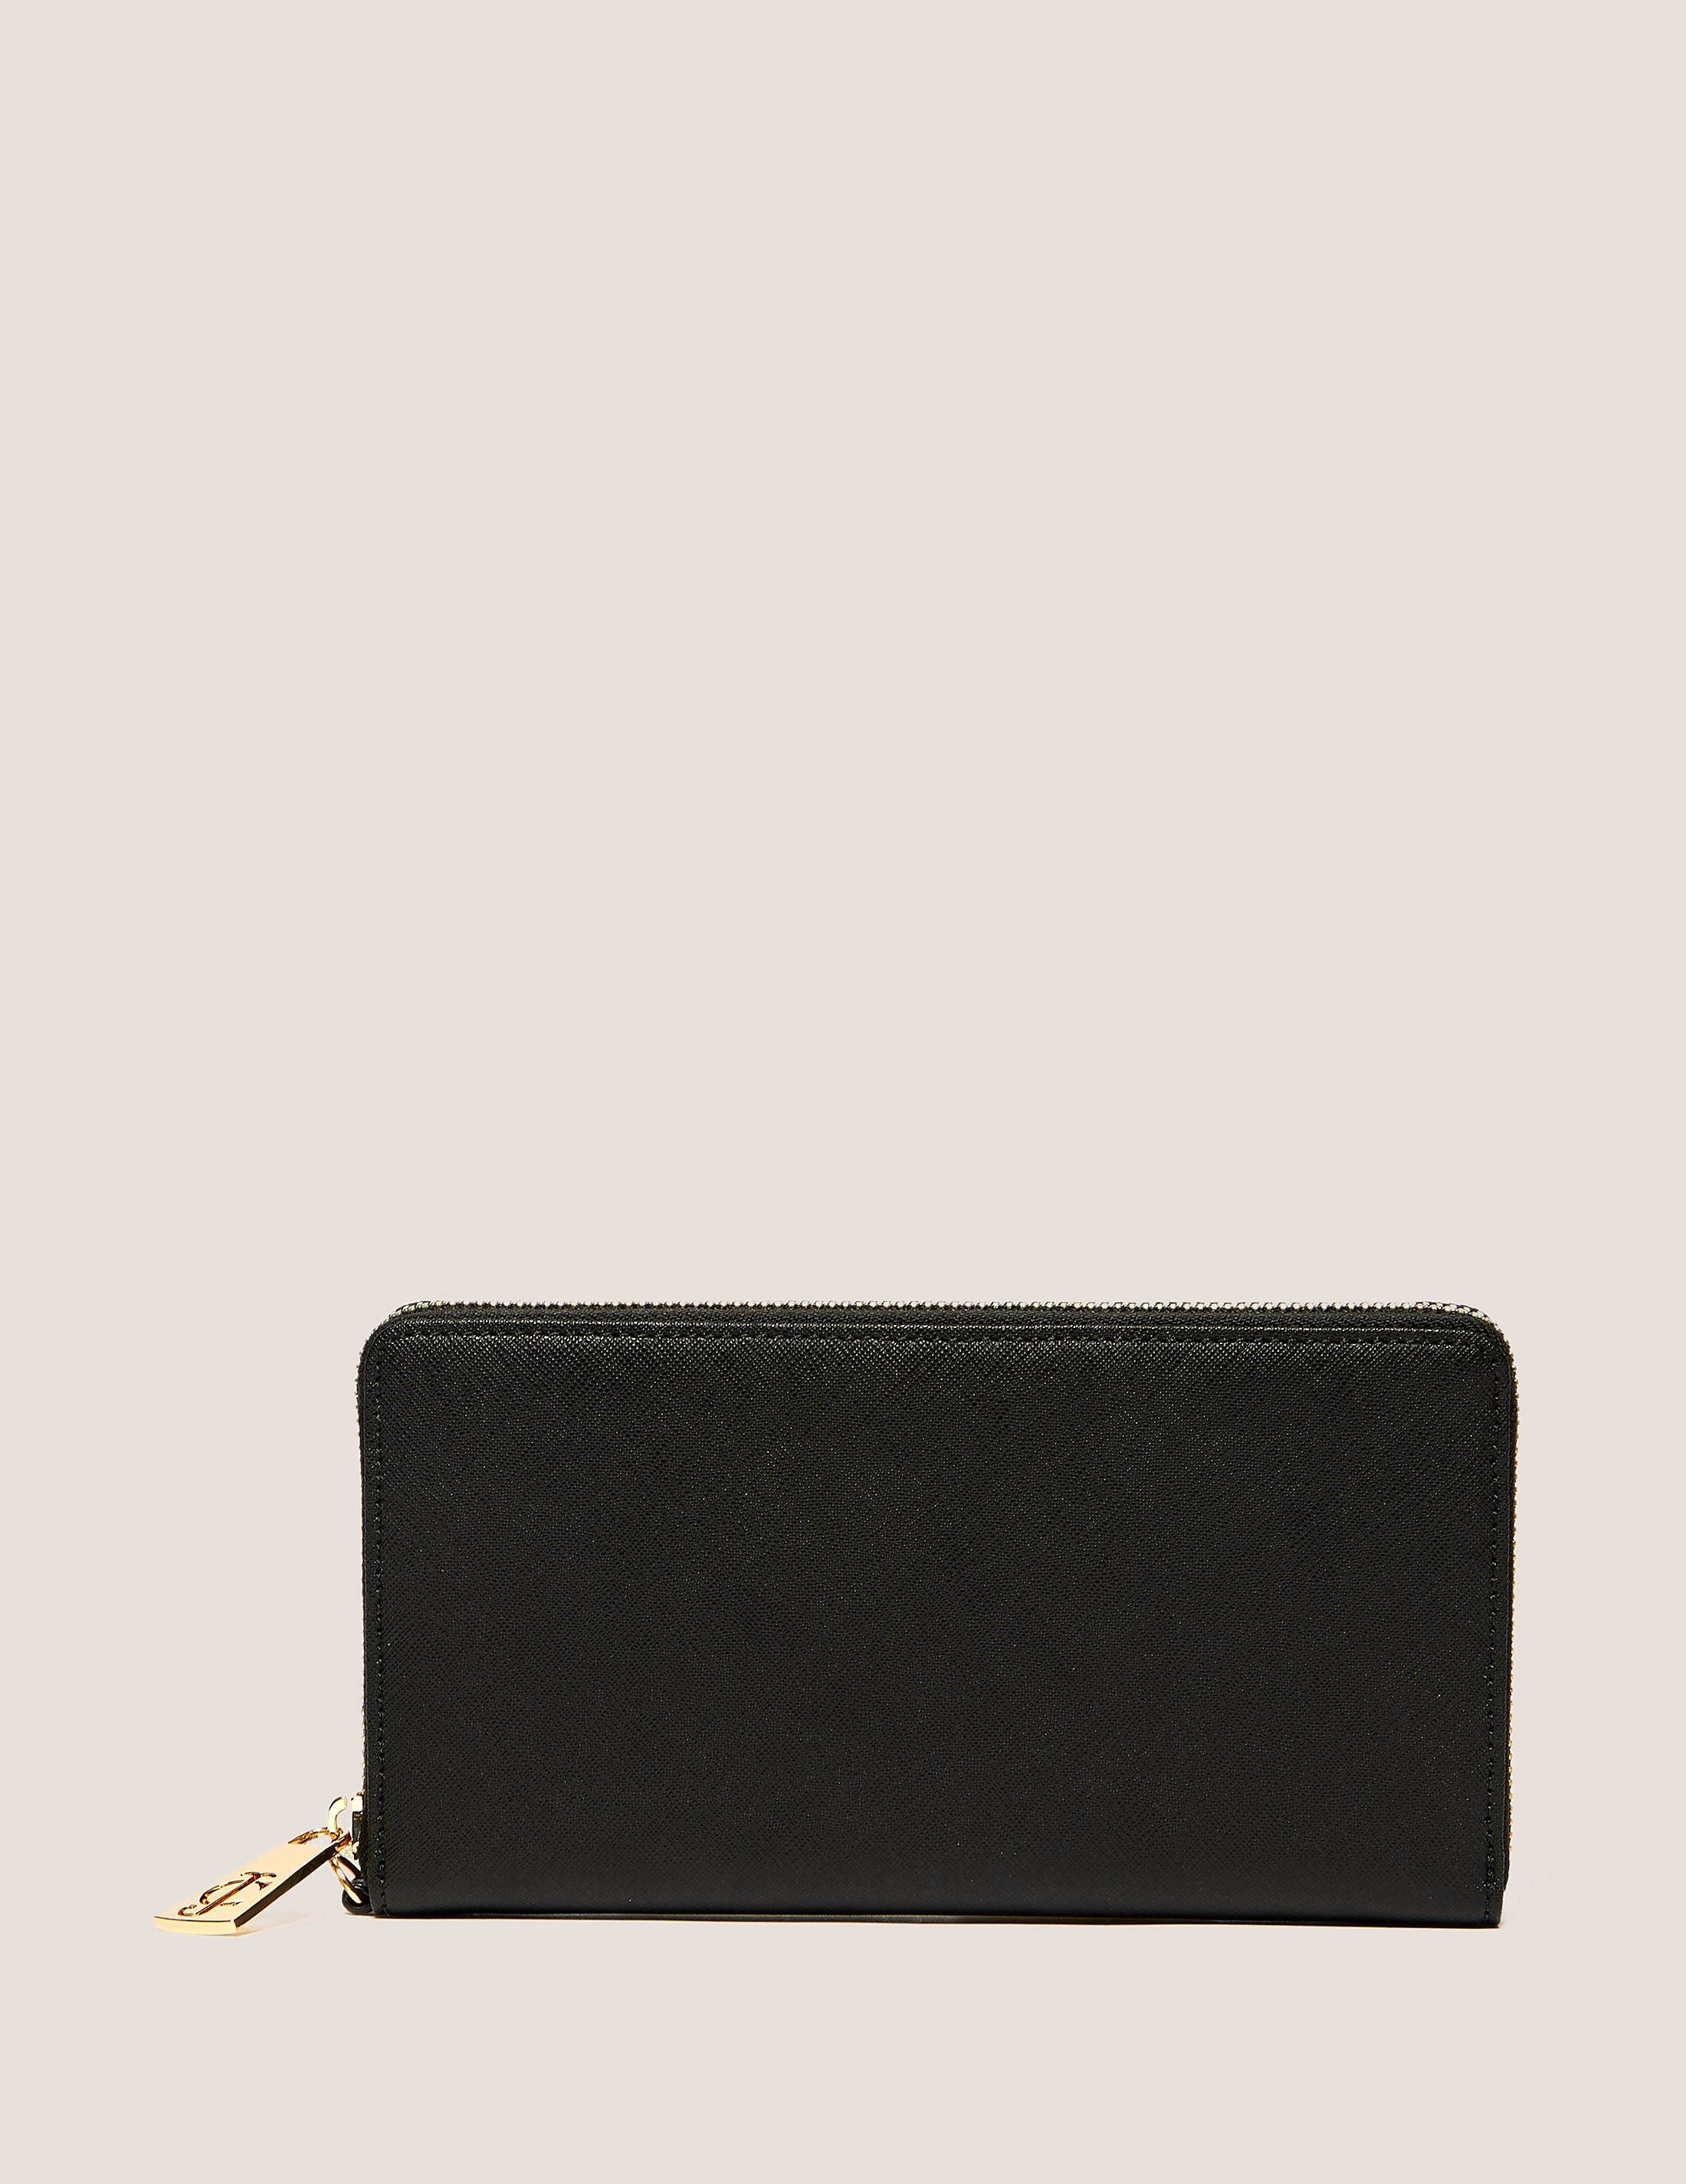 Juicy Couture Jet Set Juicy Battery Pack Zip Wallet